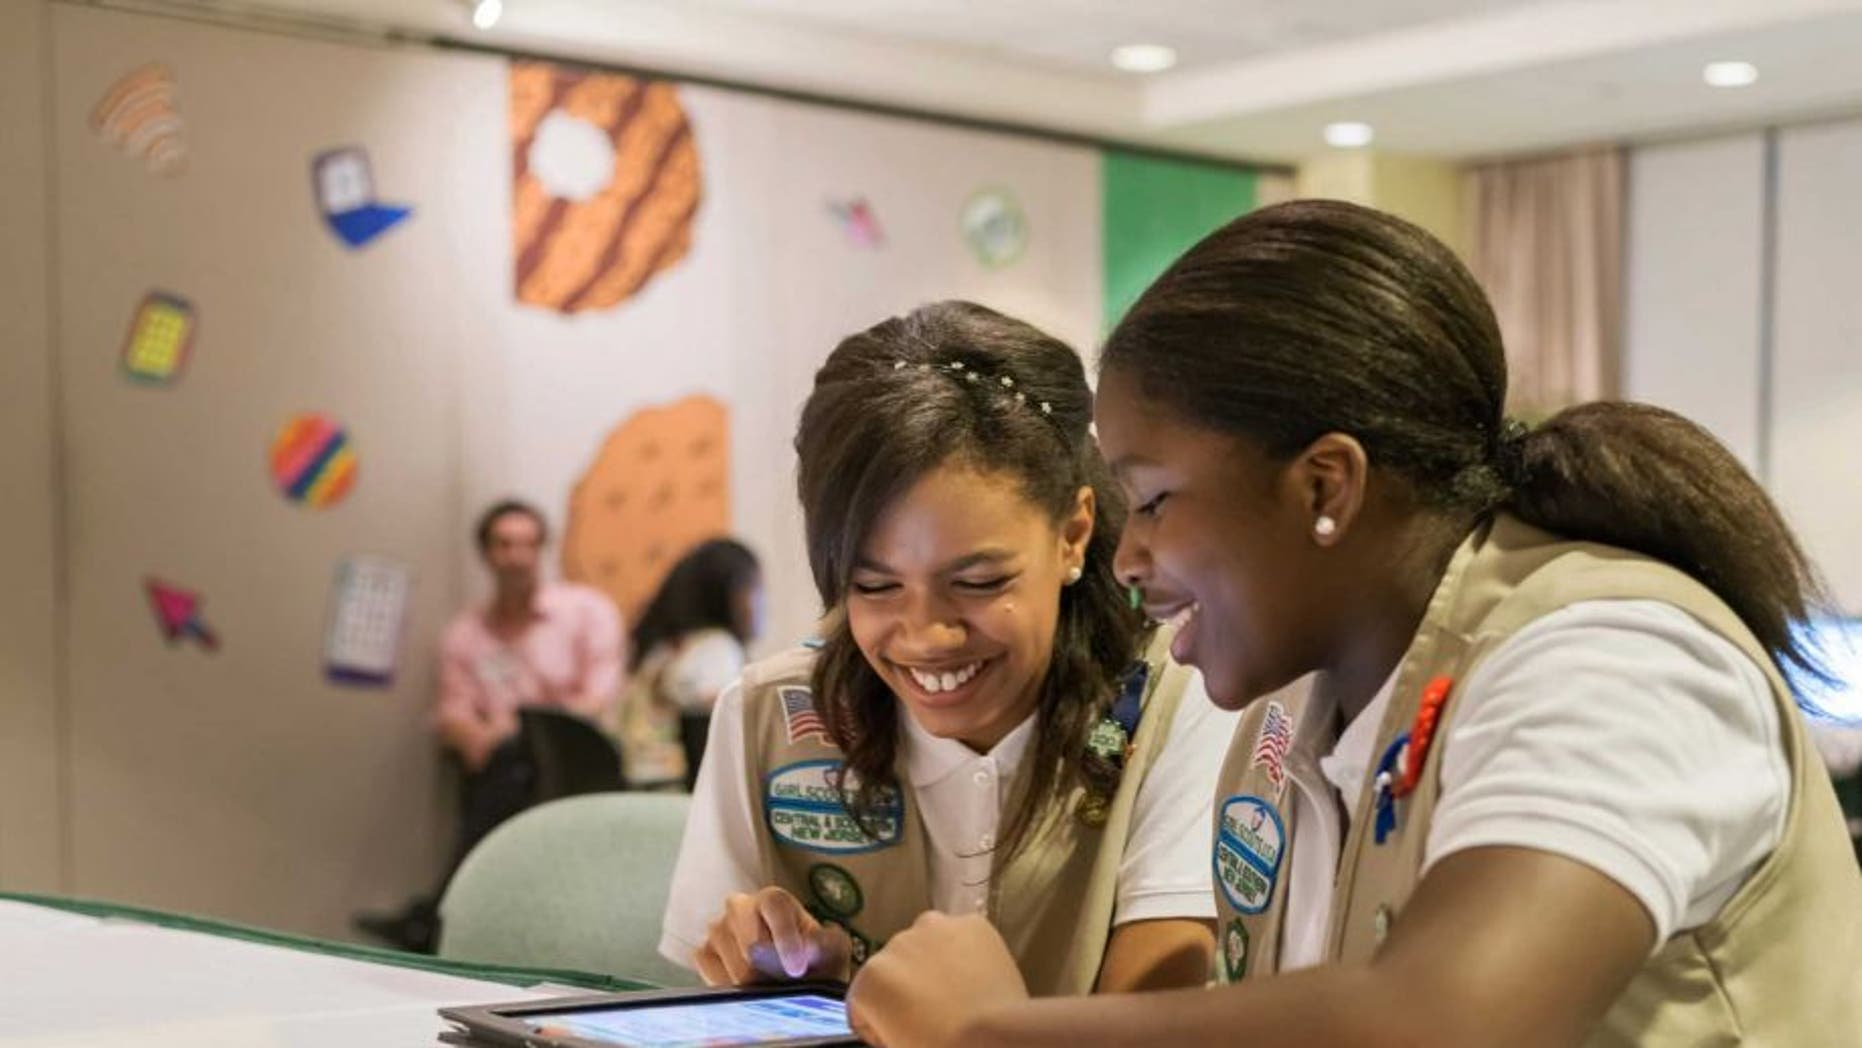 In this undated photo released by Girl Scouts of the USAGirl Scouts, Bria and Shirell practice selling cookies on one of two new digital platforms. It's the first time Girls Scouts of the USA has allowed sale of cookies using a mobile app and personalized websites. The Digital Cookie program is intended to enhance, not replace, traditional use of paper spreadsheets.